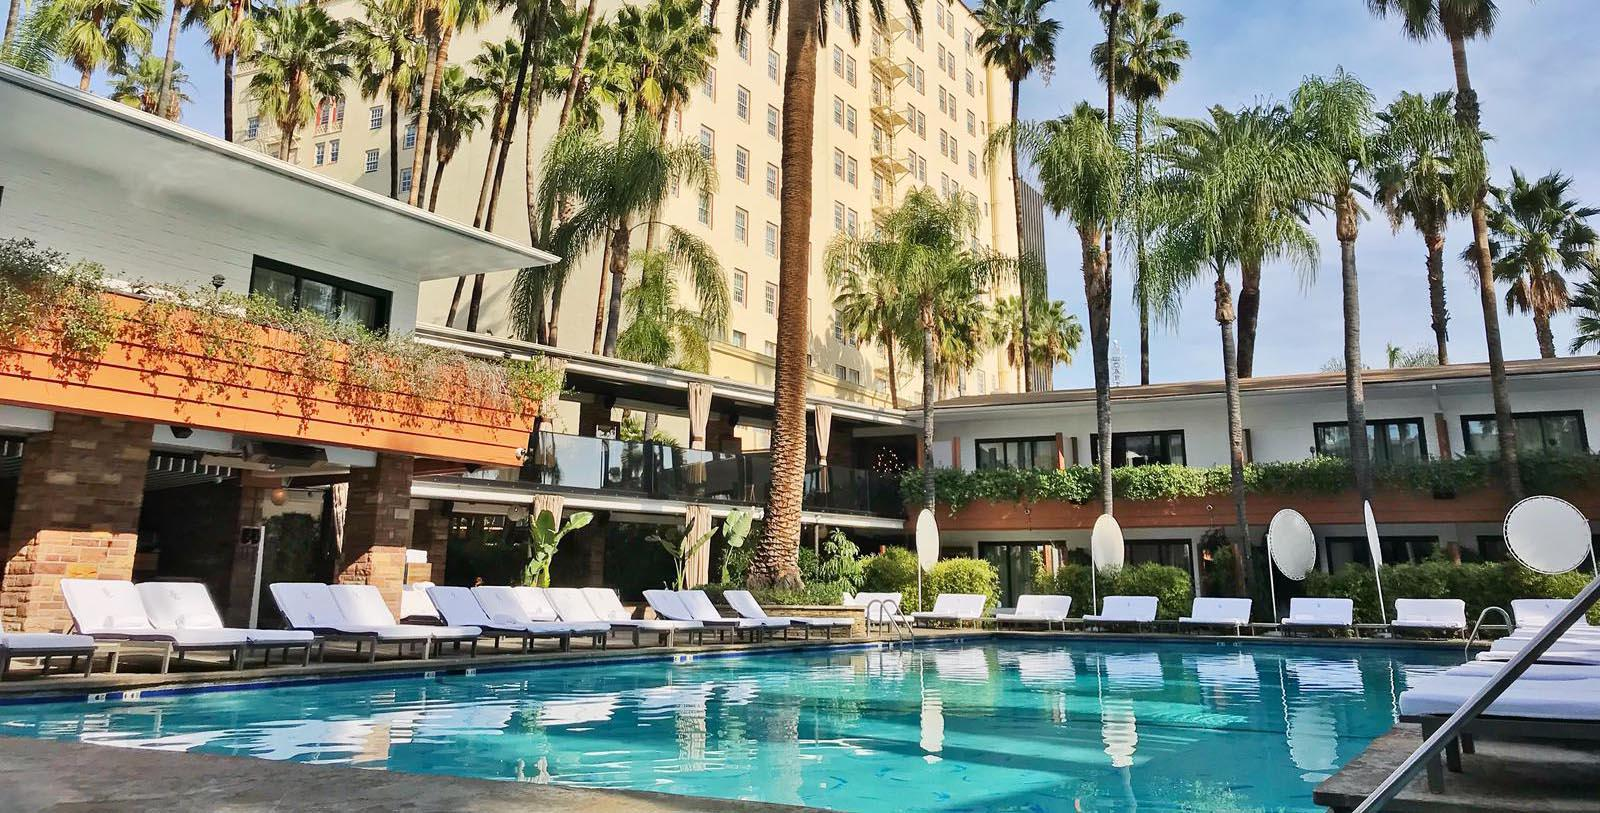 Image of Pool The Hollywood Roosevelt, 1927, Member of Historic Hotels of America, in Hollywood, California, Explore